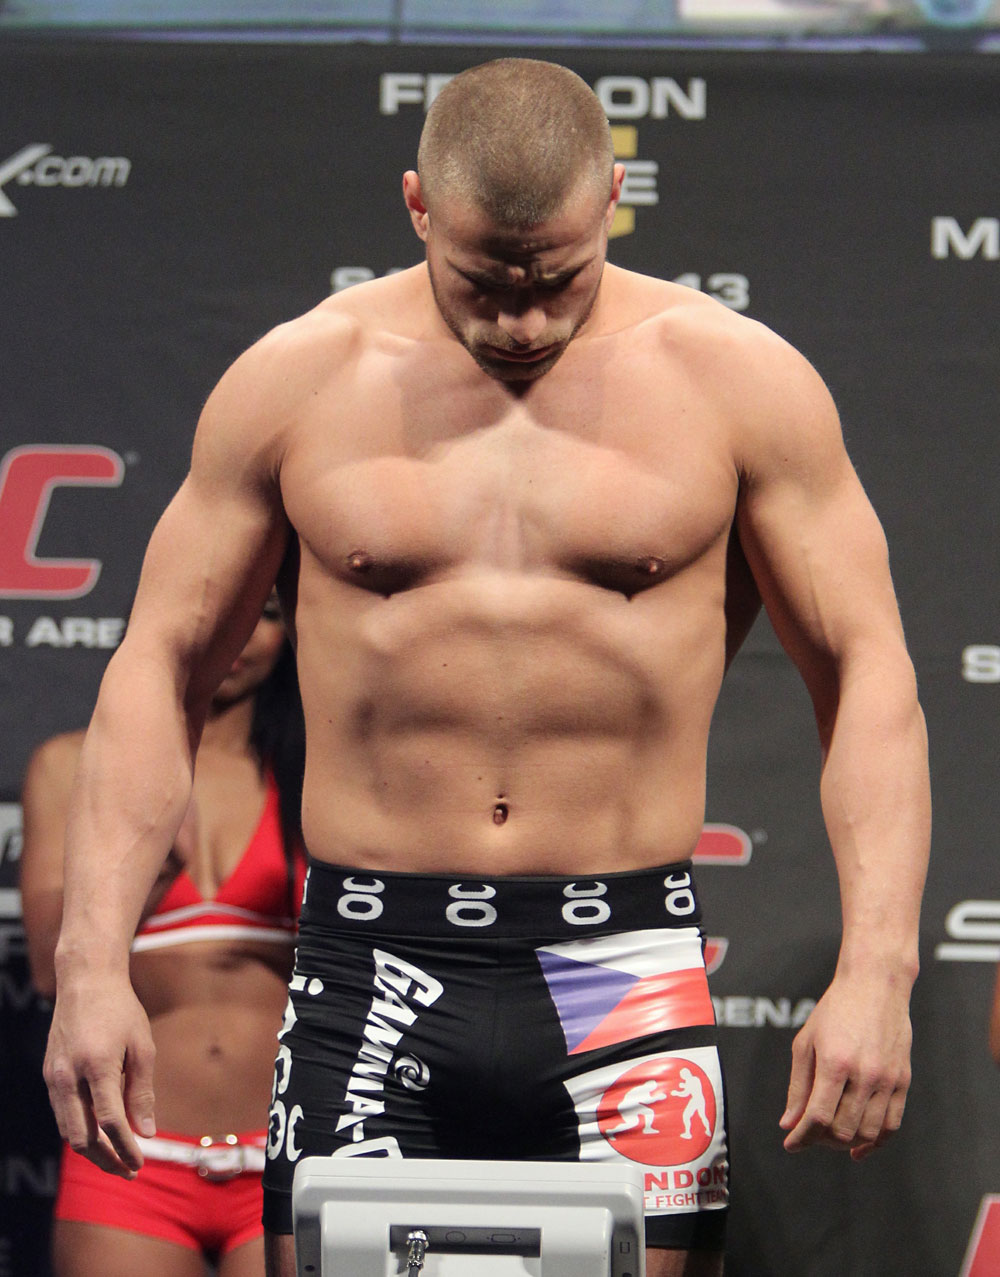 Karlos Vemola weighs in at 205 lbs at the UFC 122 weigh-in at the Kšnig Pilsener Arena on November 12,  2010 in Oberhausen, Germany.  (Photo by Josh Hedges/Zuffa LLC/Zuffa LLC via Getty Images)